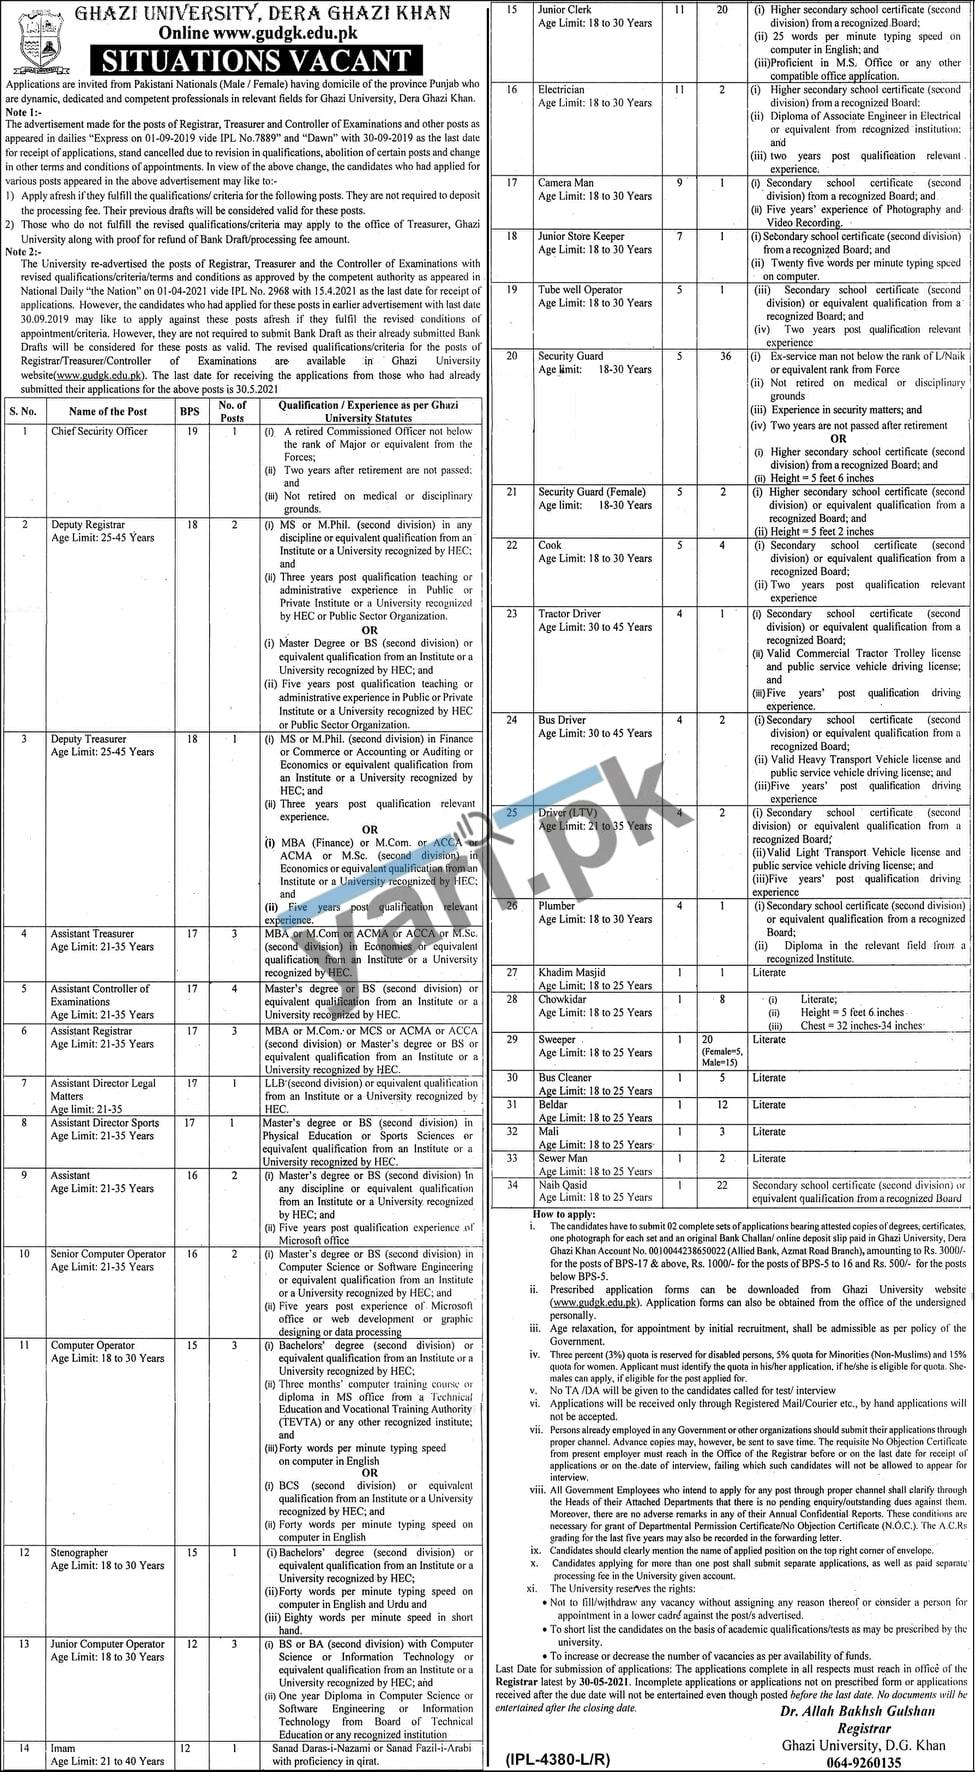 university-staff-jobs-2021-for-tractor-driver-